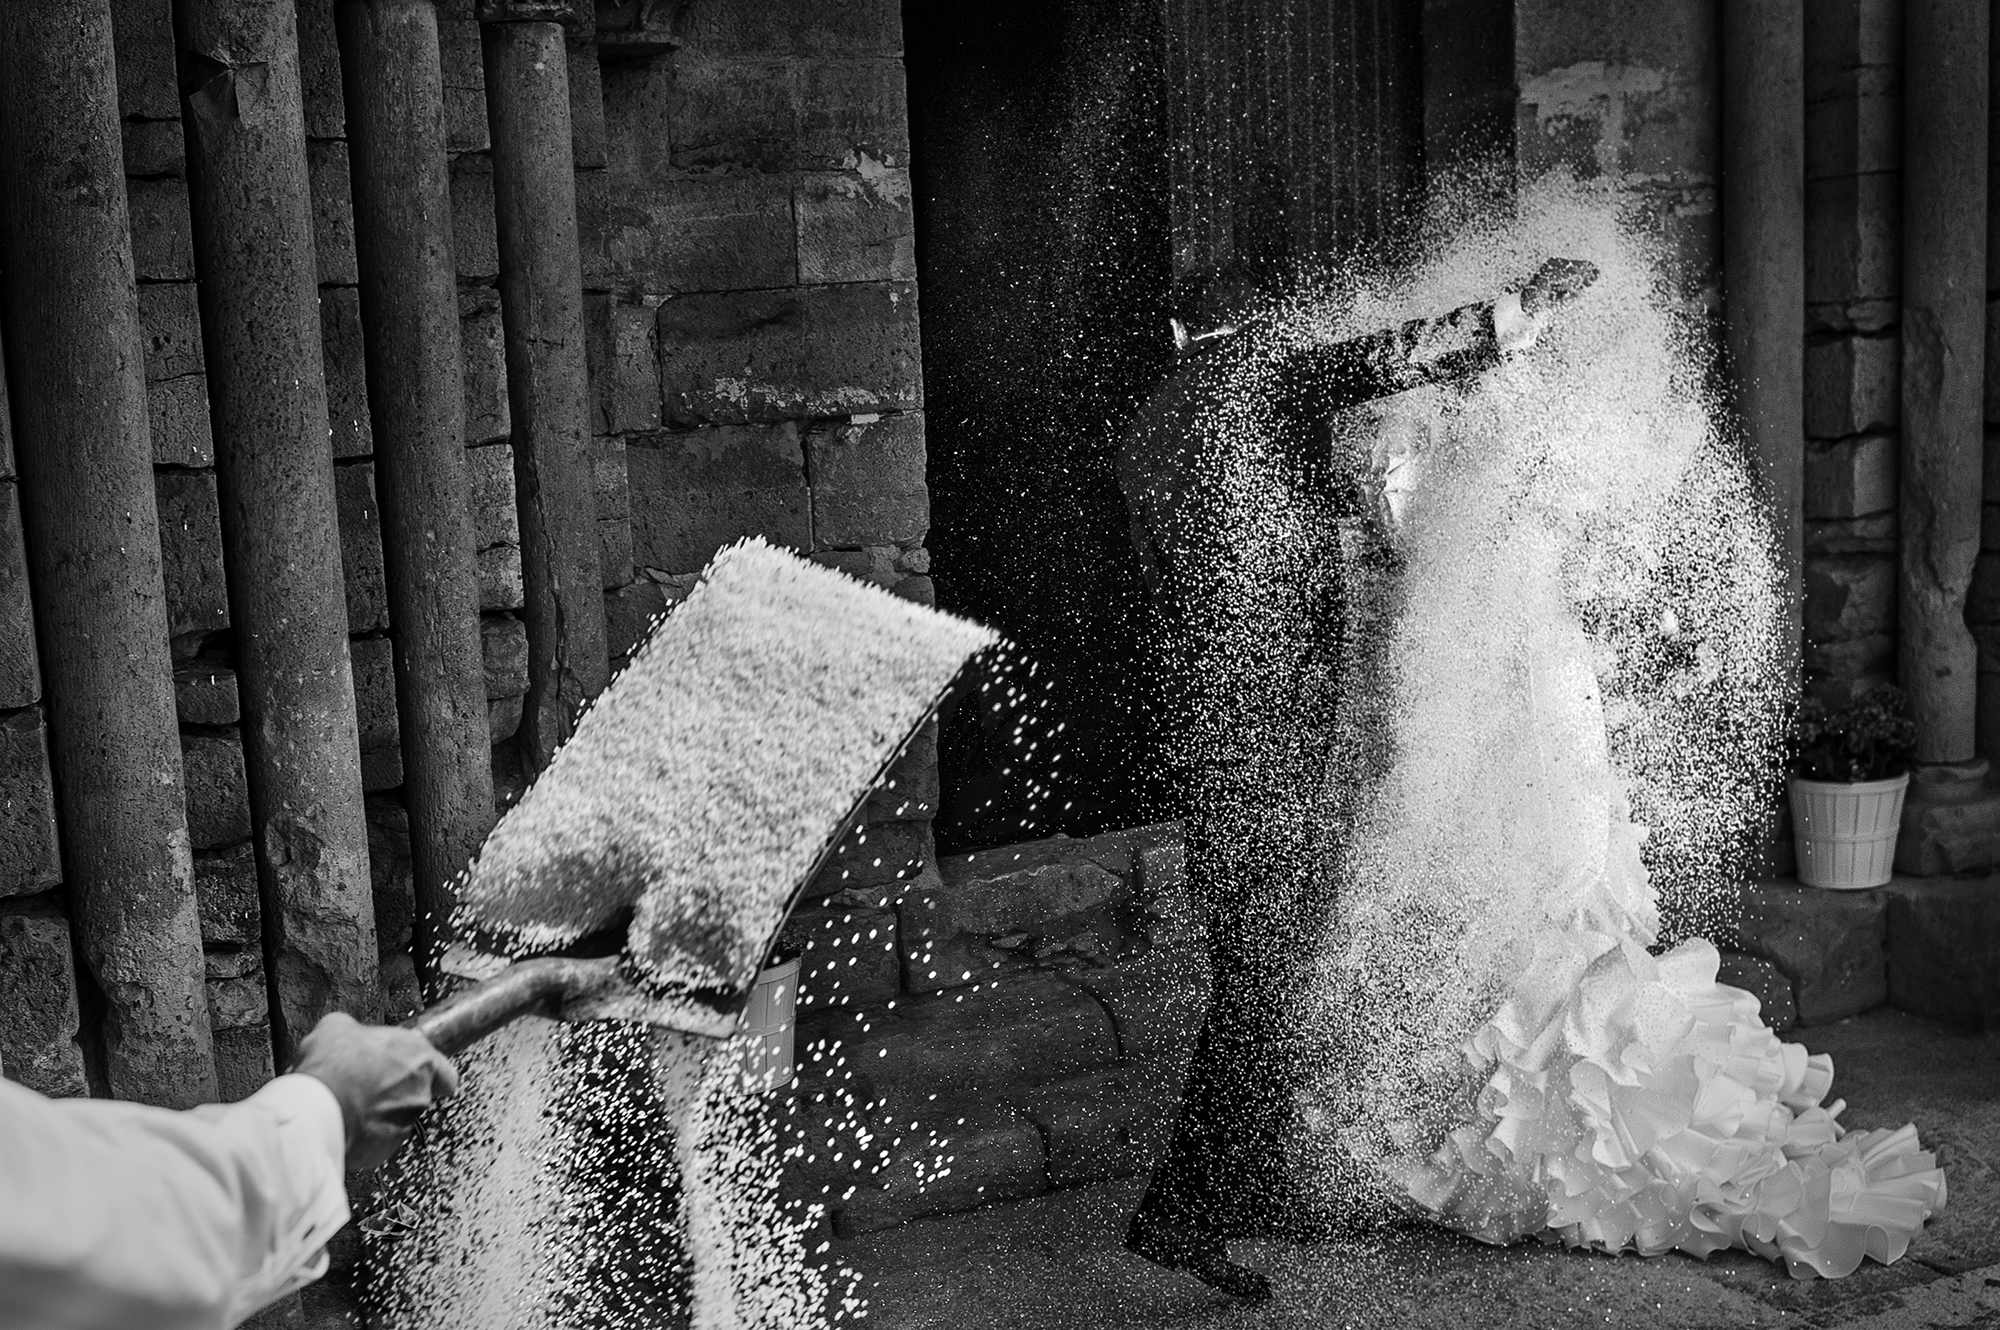 Shoveling rice on bride and groom - photo by Victor Lax